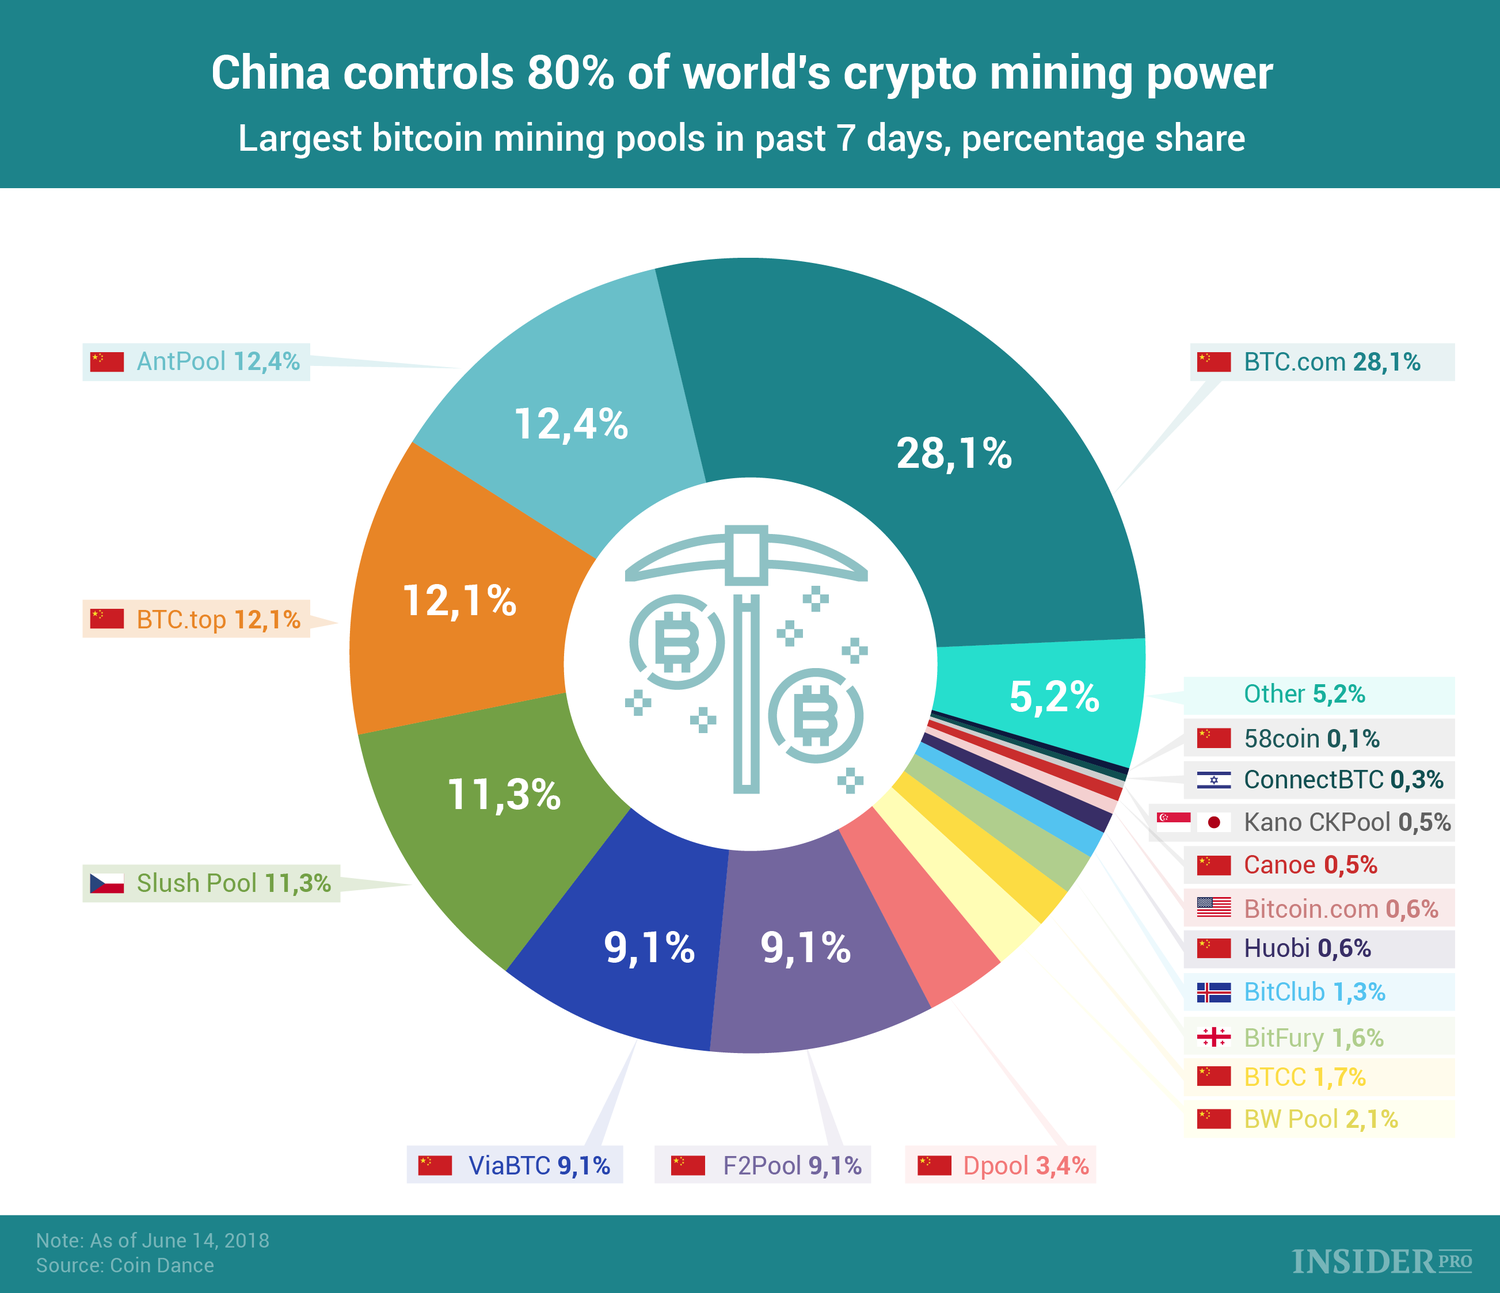 China controls 80% of the world's mining power.